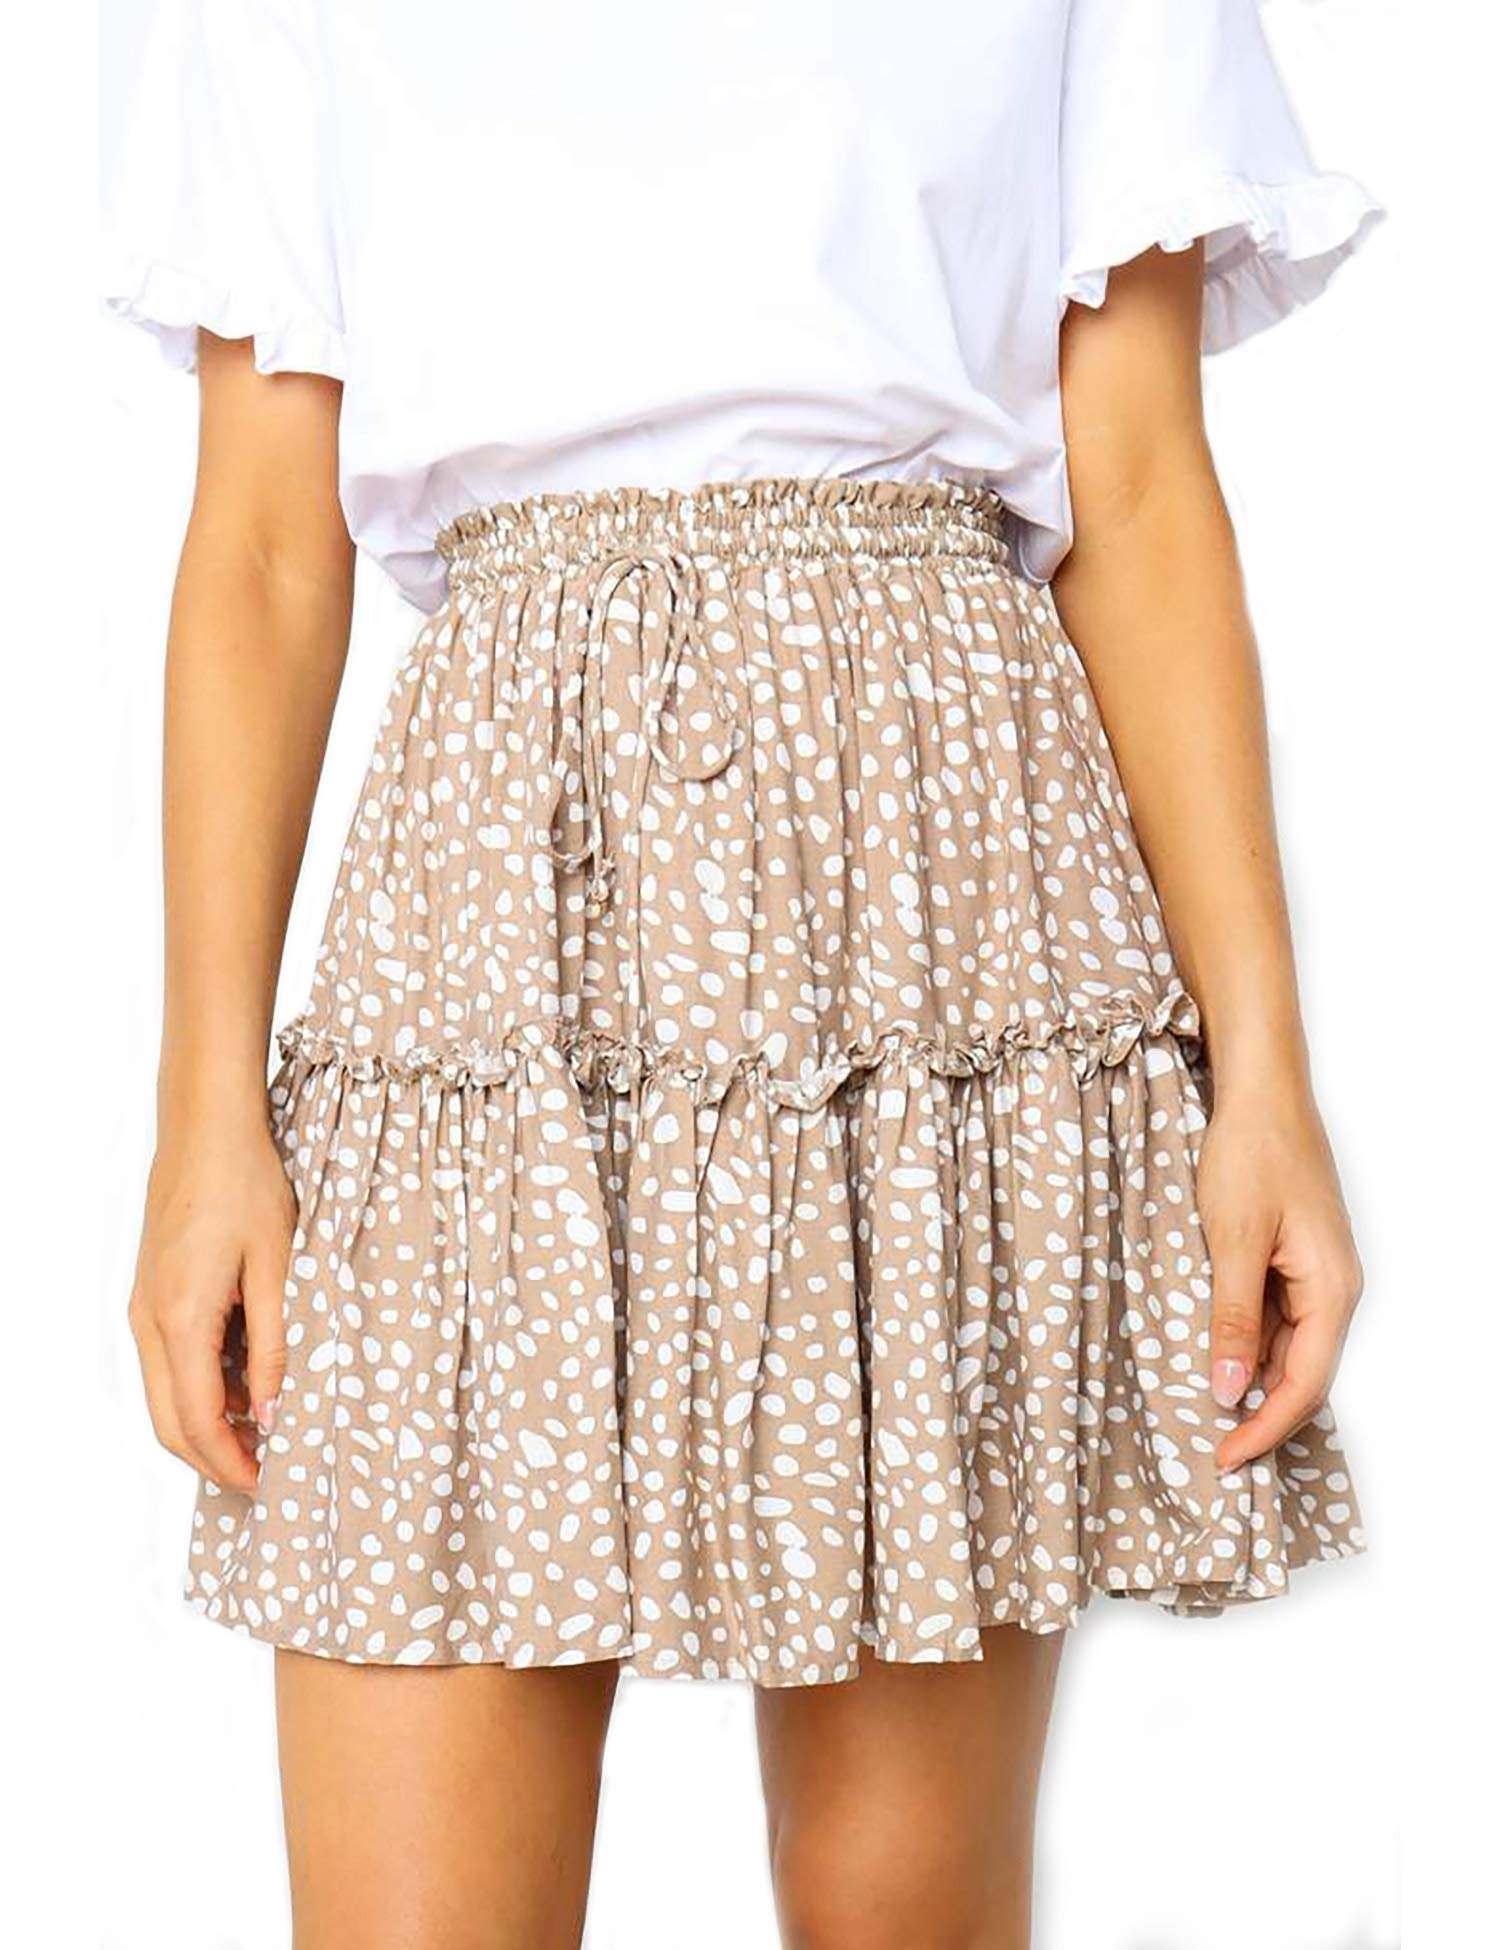 Relipop Women's Flared Short Skirt Polka Dot + The Perfume You Will Want to Wear All Summer Long